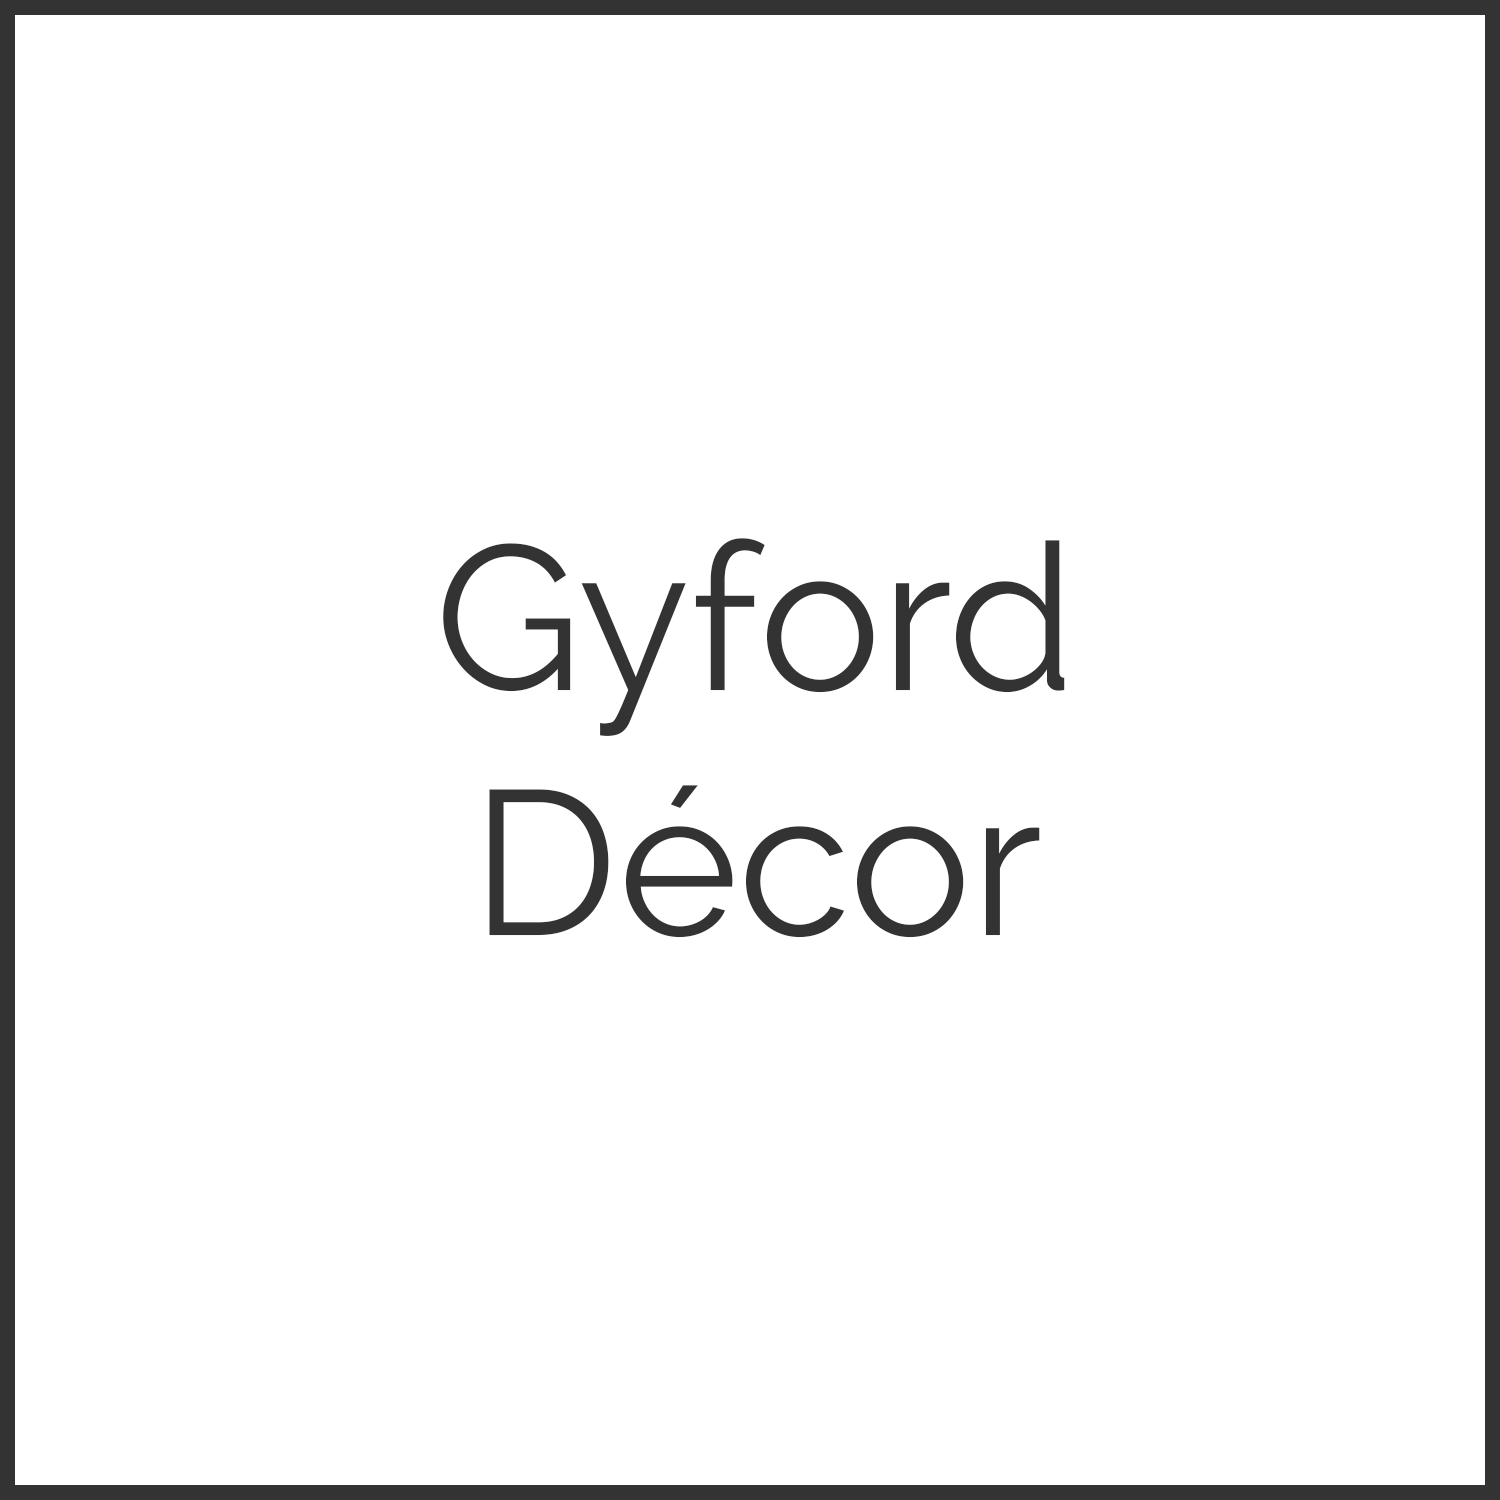 Gyford Decor